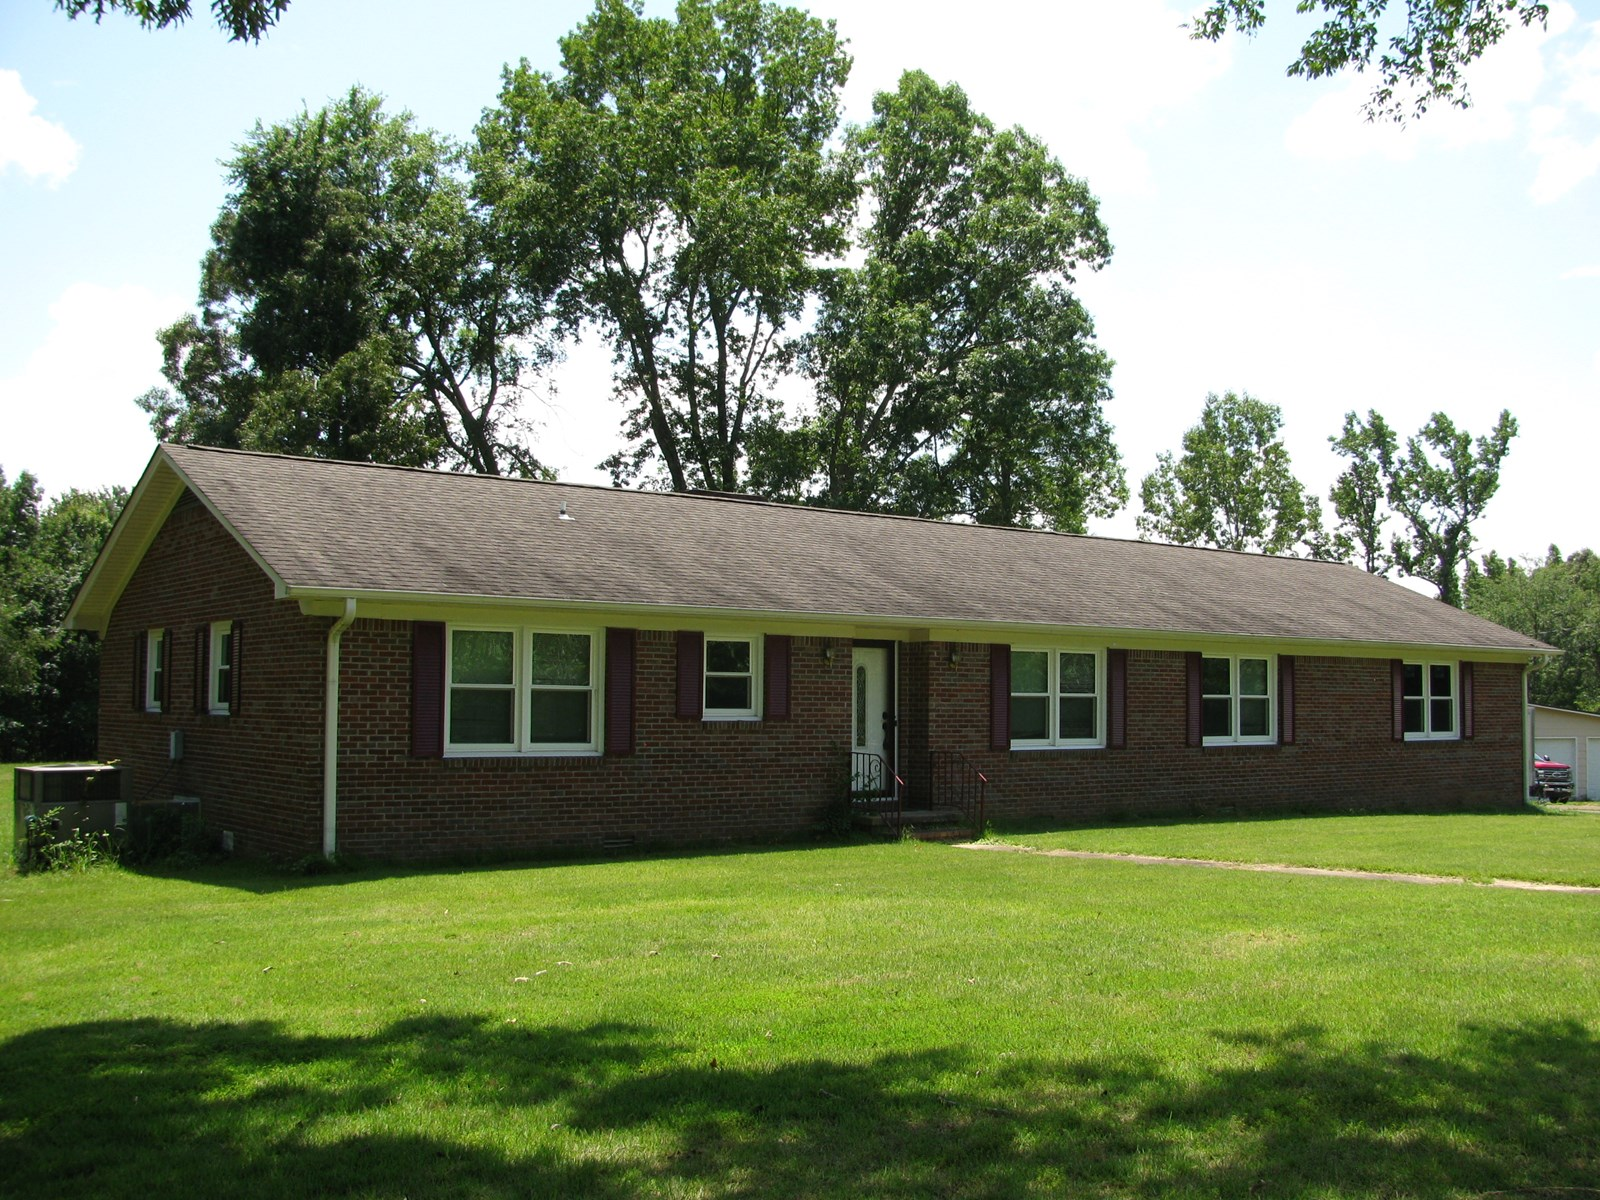 3 BEDROOM BRICK HOME IN TN WITH POND, COUNTRY HOME